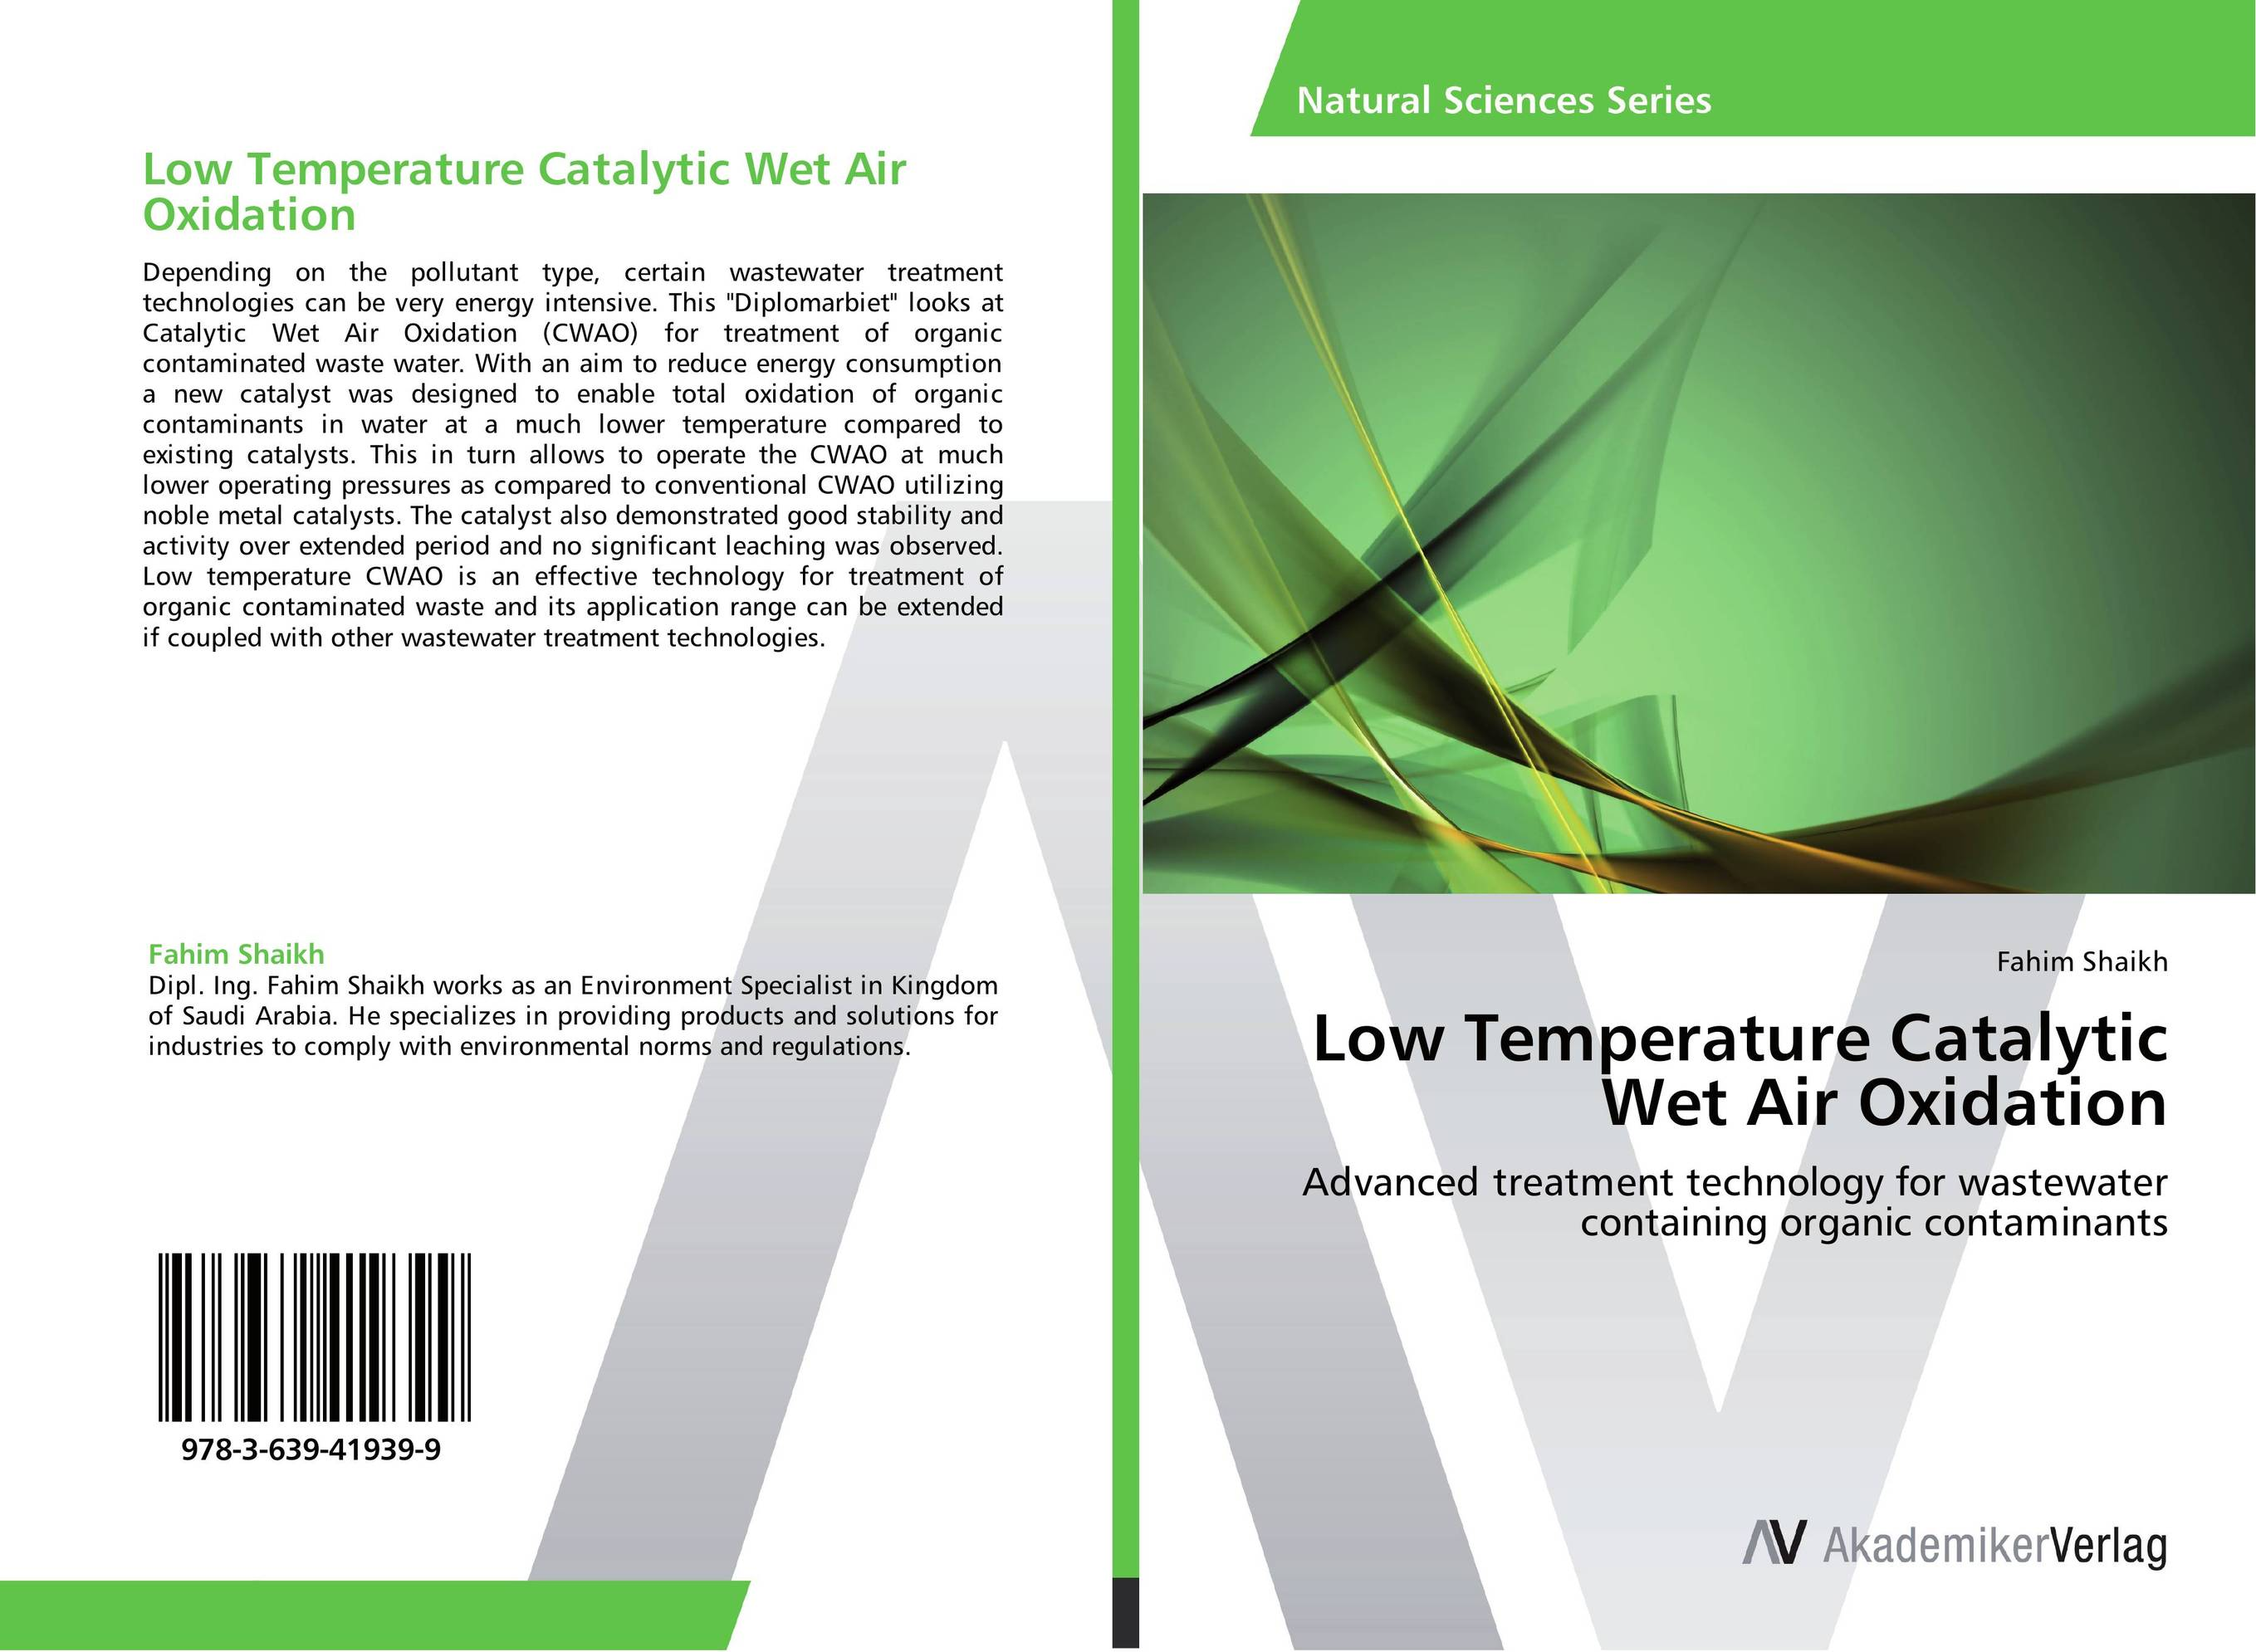 Low Temperature Catalytic Wet Air Oxidation